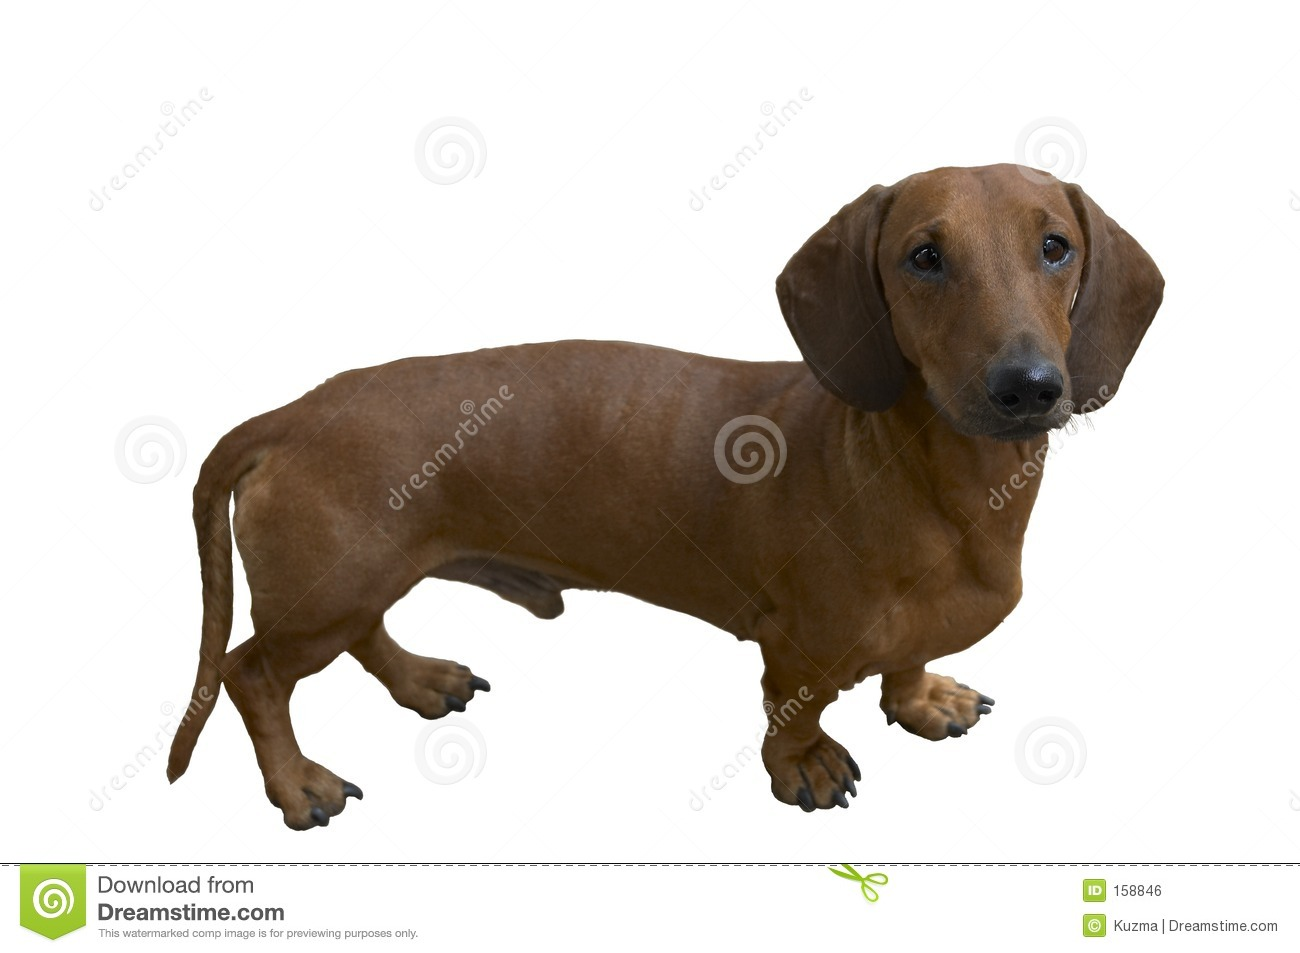 Pretty dachshund